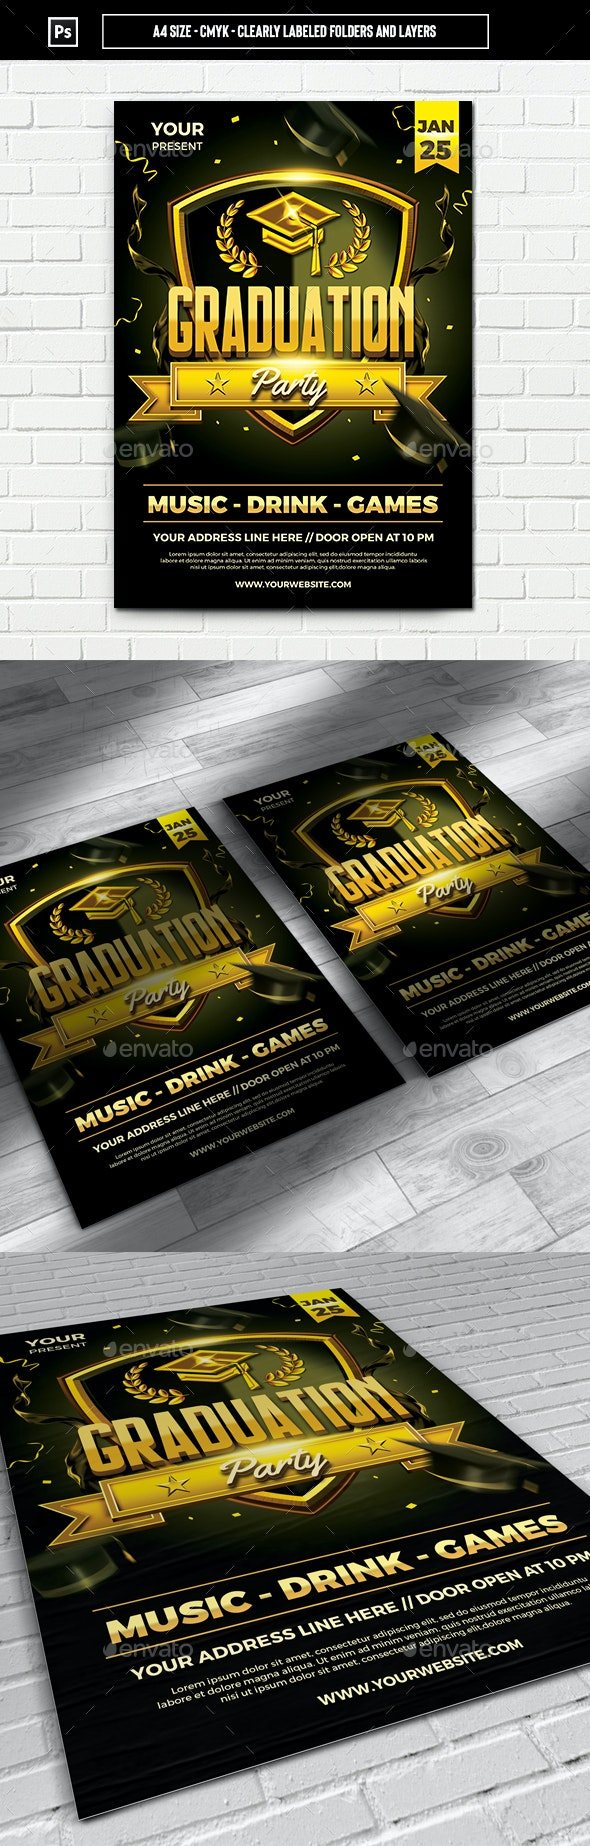 Graduation Party Flyer Template - Events Flyers